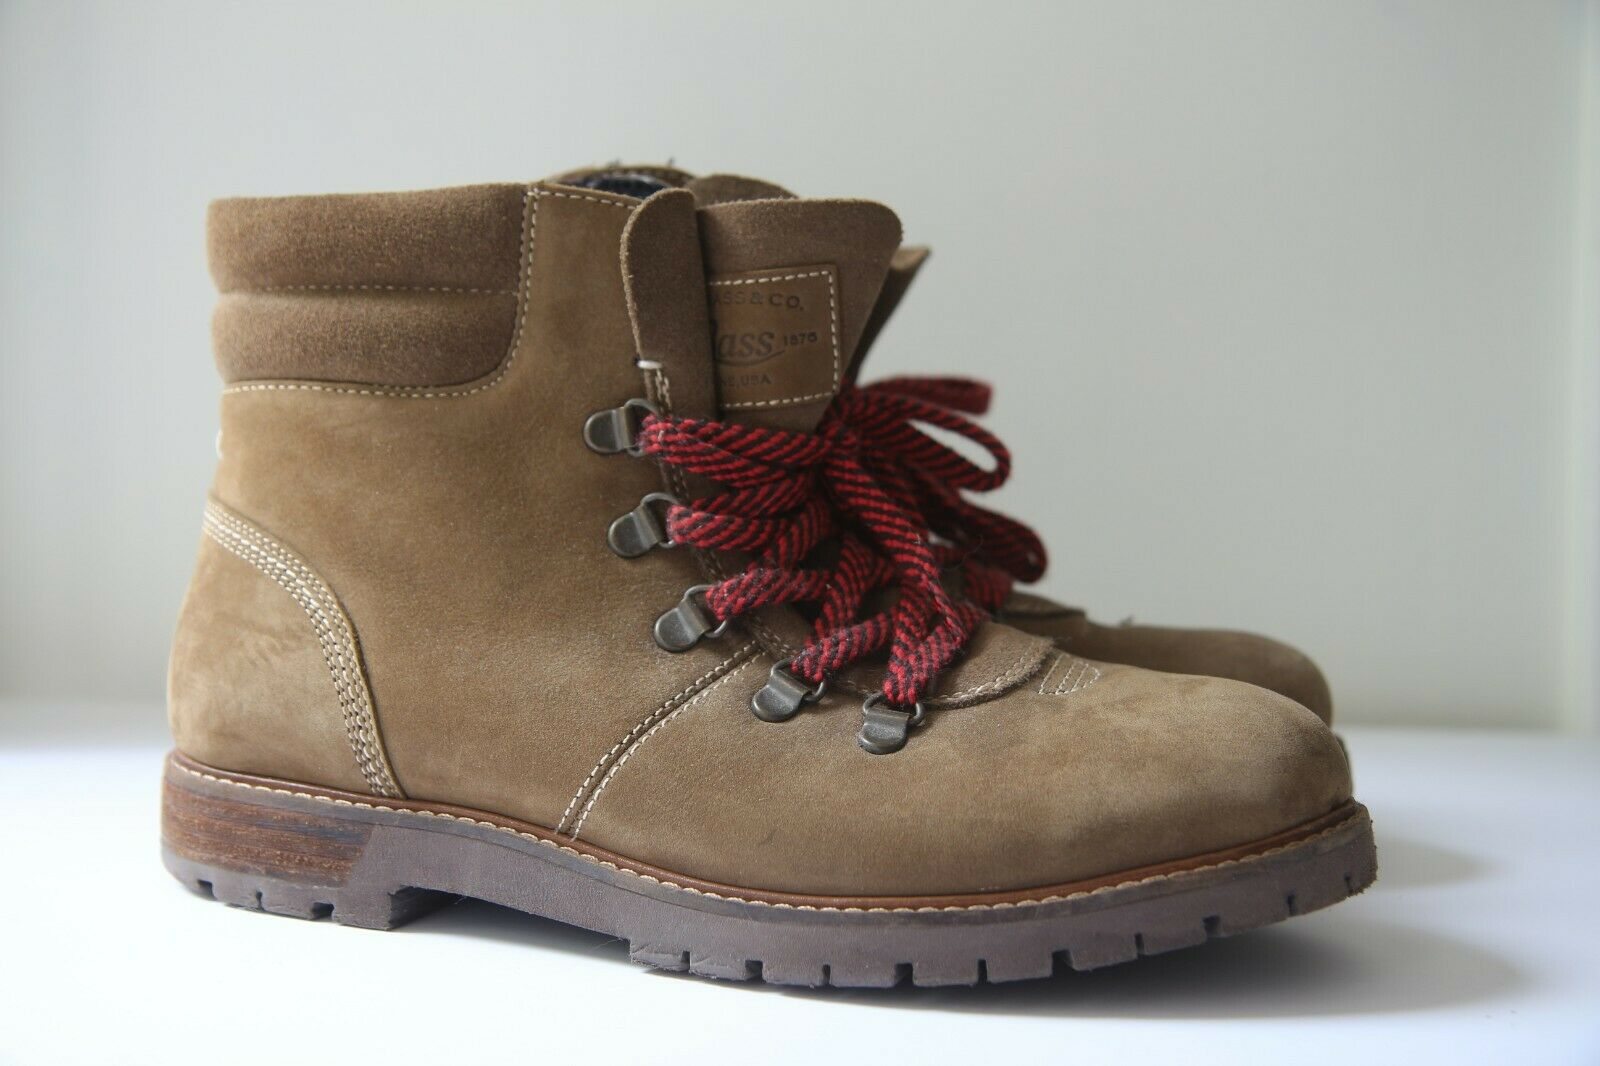 G.H. Bass Nadine Hiker Boot Olive Tobacco Size 8.5 from Madewell